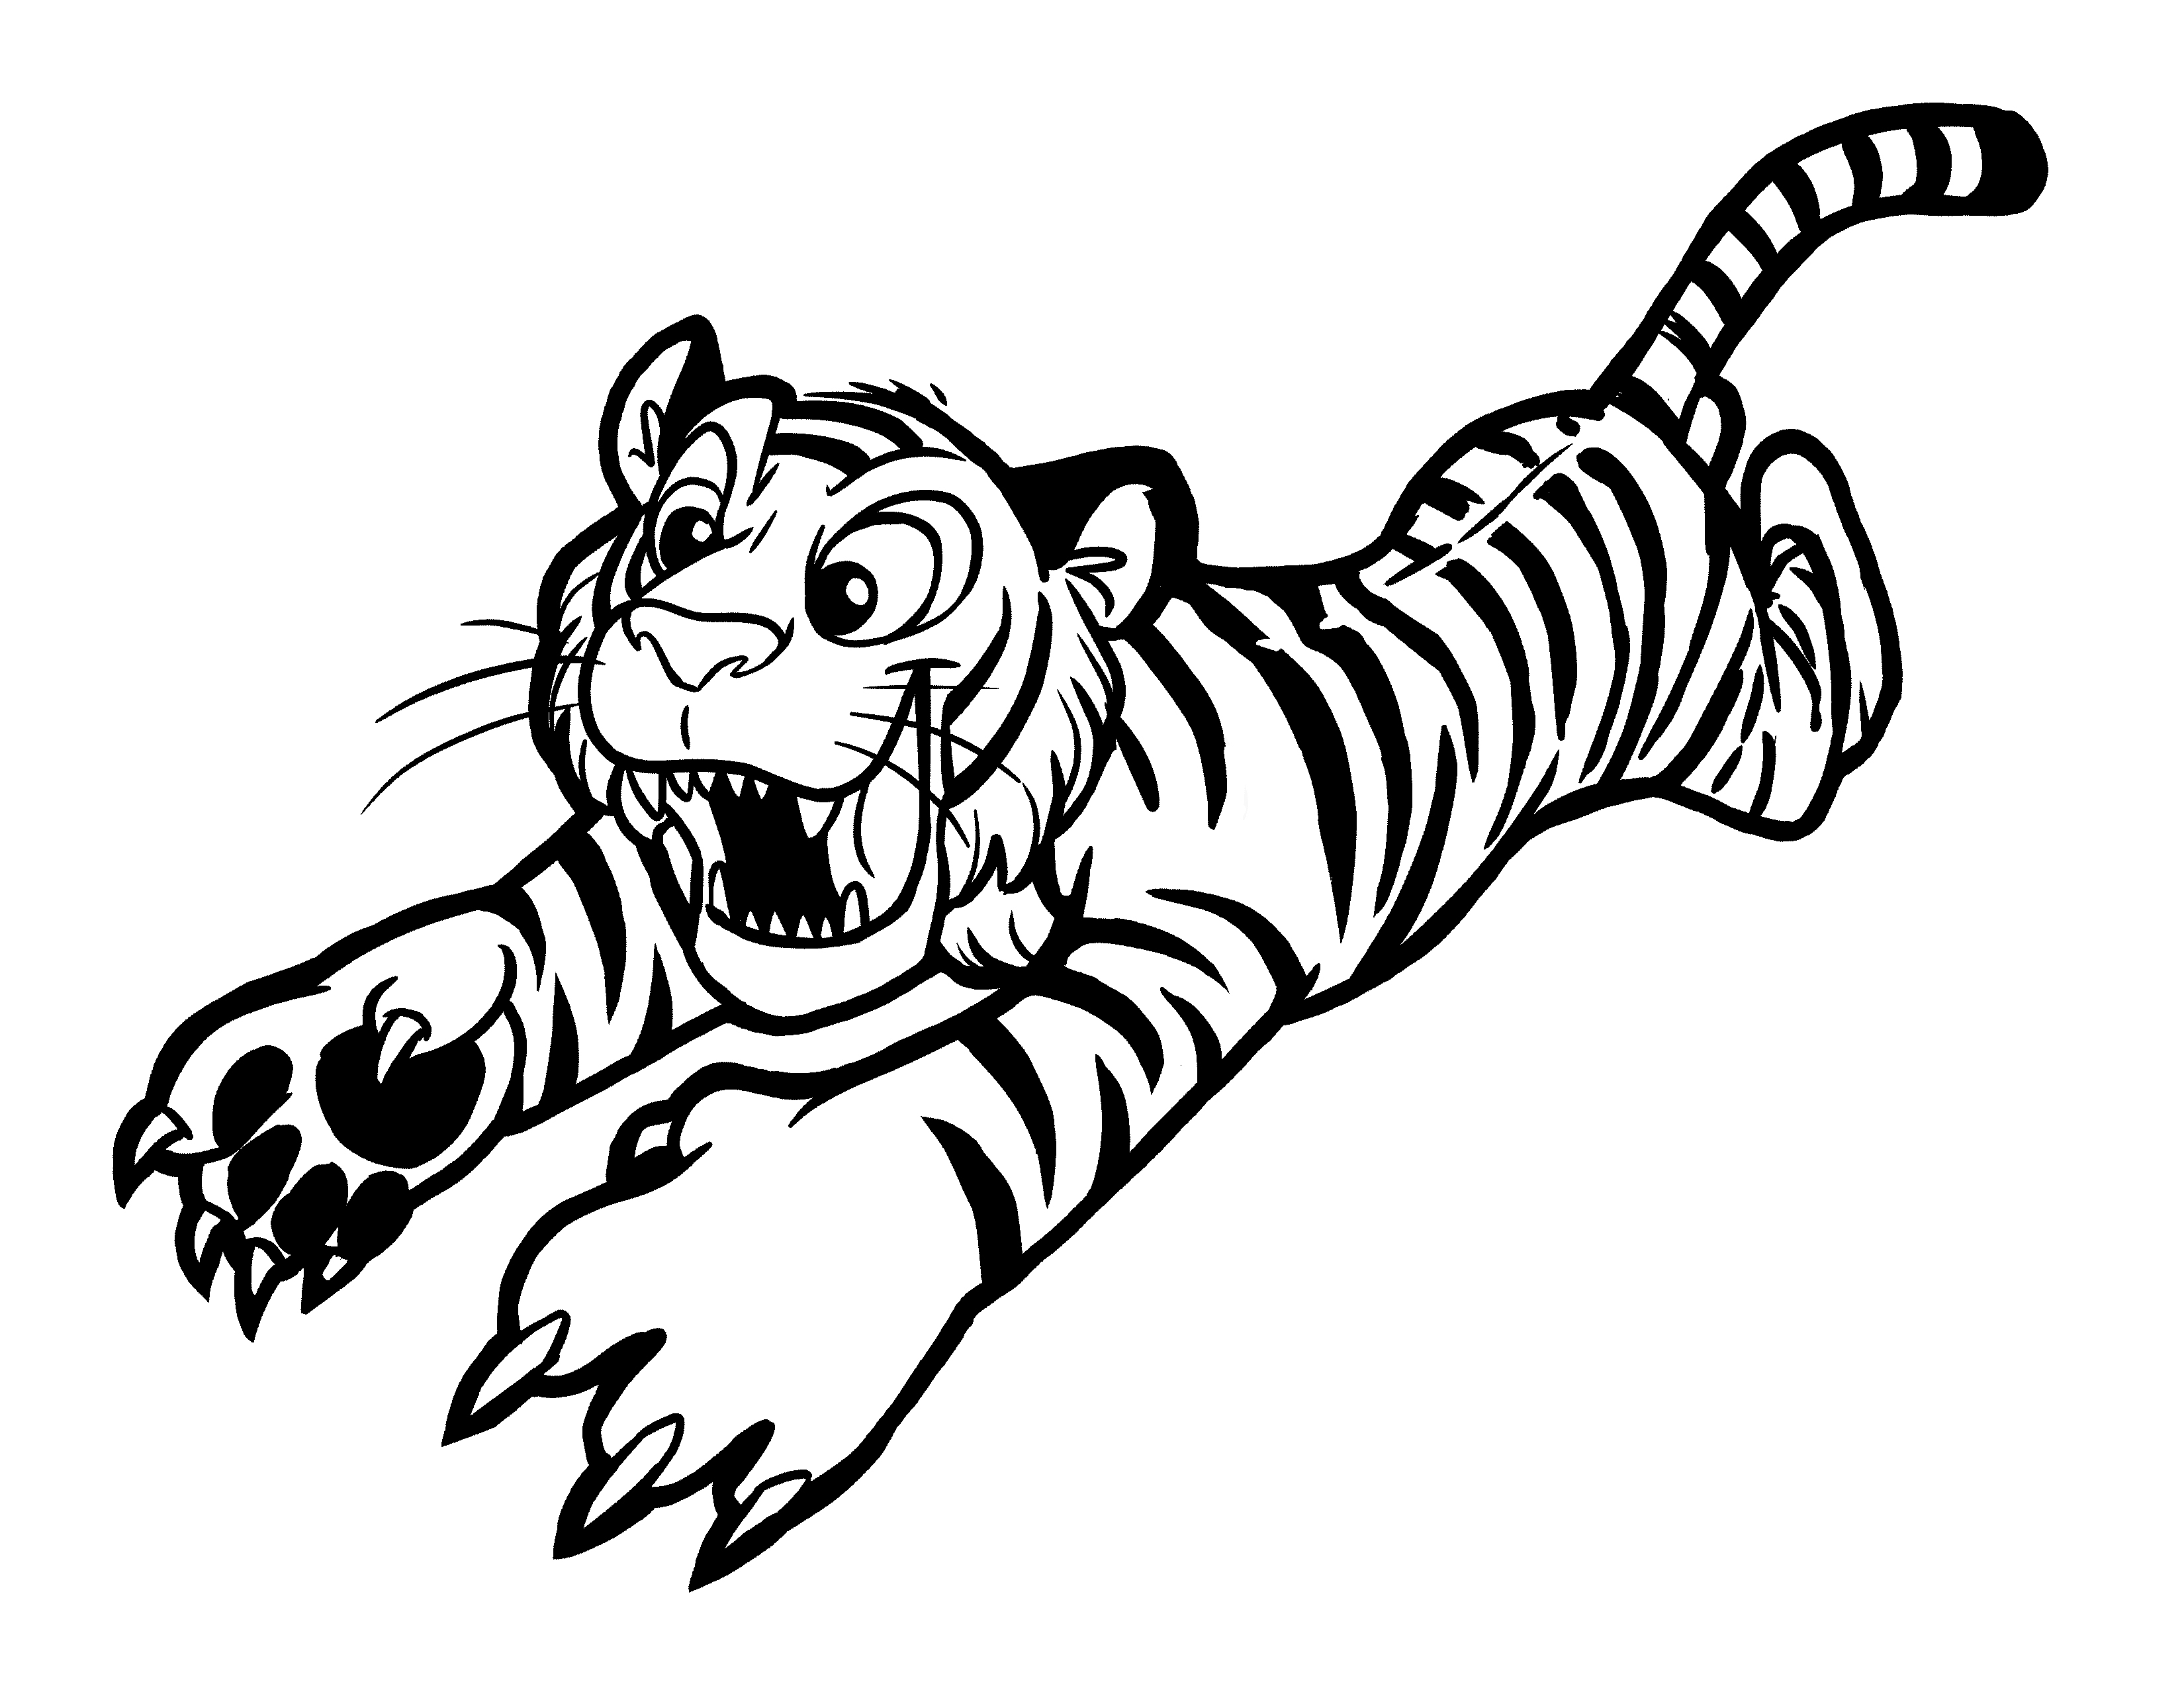 coloring page tiger tigers to color for kids tigers kids coloring pages coloring tiger page